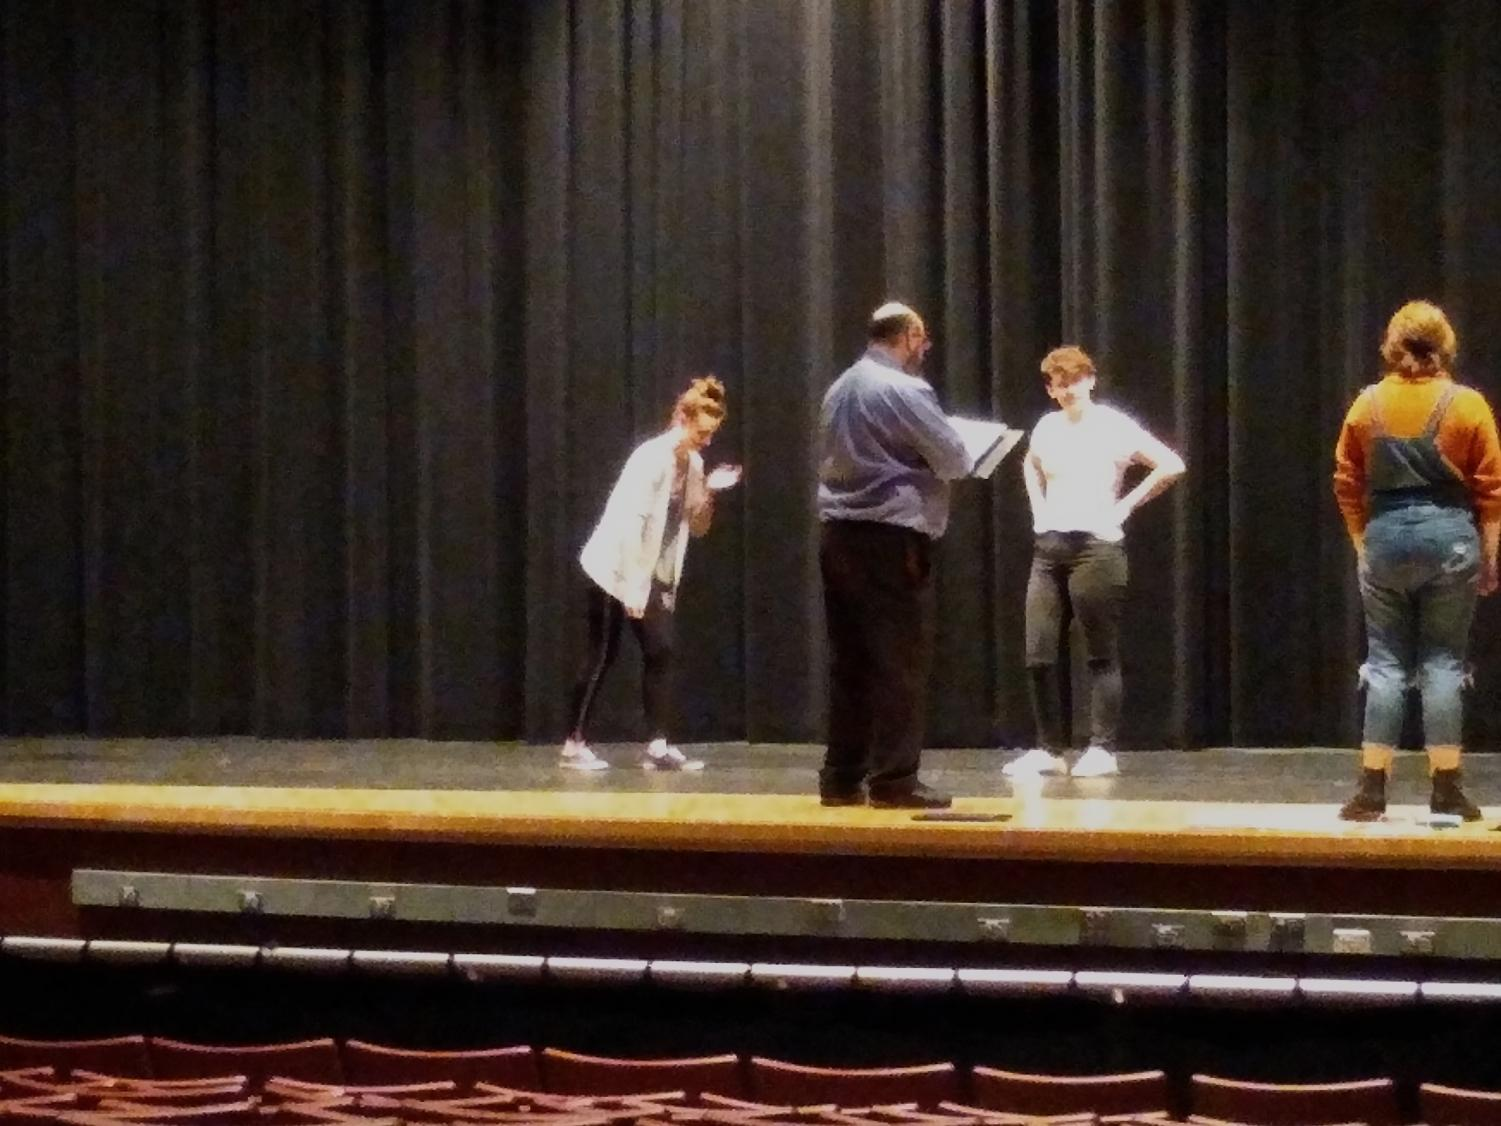 [left to right] Mr. Dan Lake assists Ashley Perise (Enchantress), Natalie Roth (Young Prince) and Beau Cameron (Student Director) with the prologue